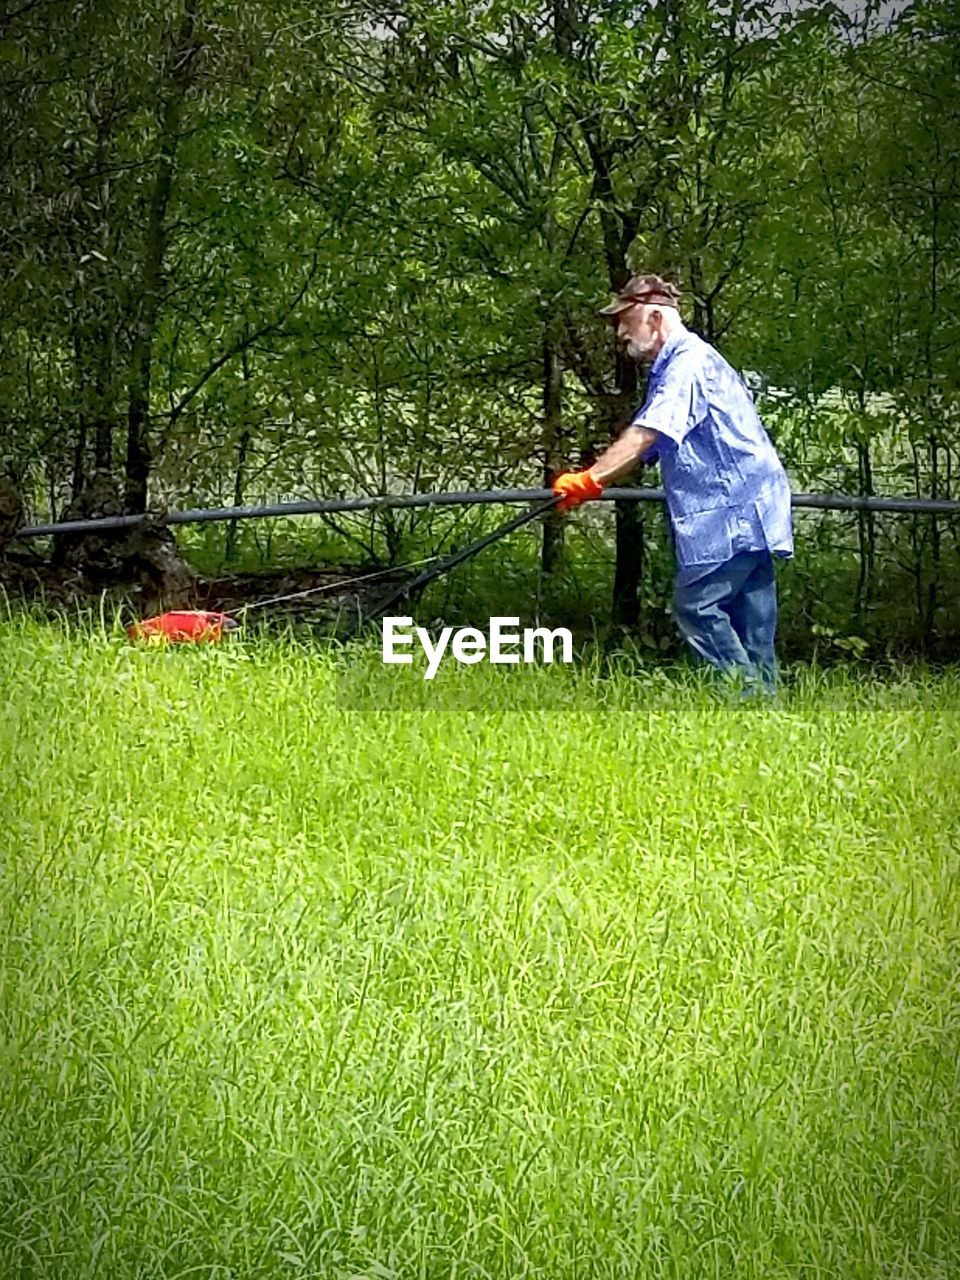 plant, grass, one person, nature, green color, real people, growth, casual clothing, lifestyles, full length, leisure activity, day, land, tree, holding, men, standing, field, outdoors, gardening, garden hose